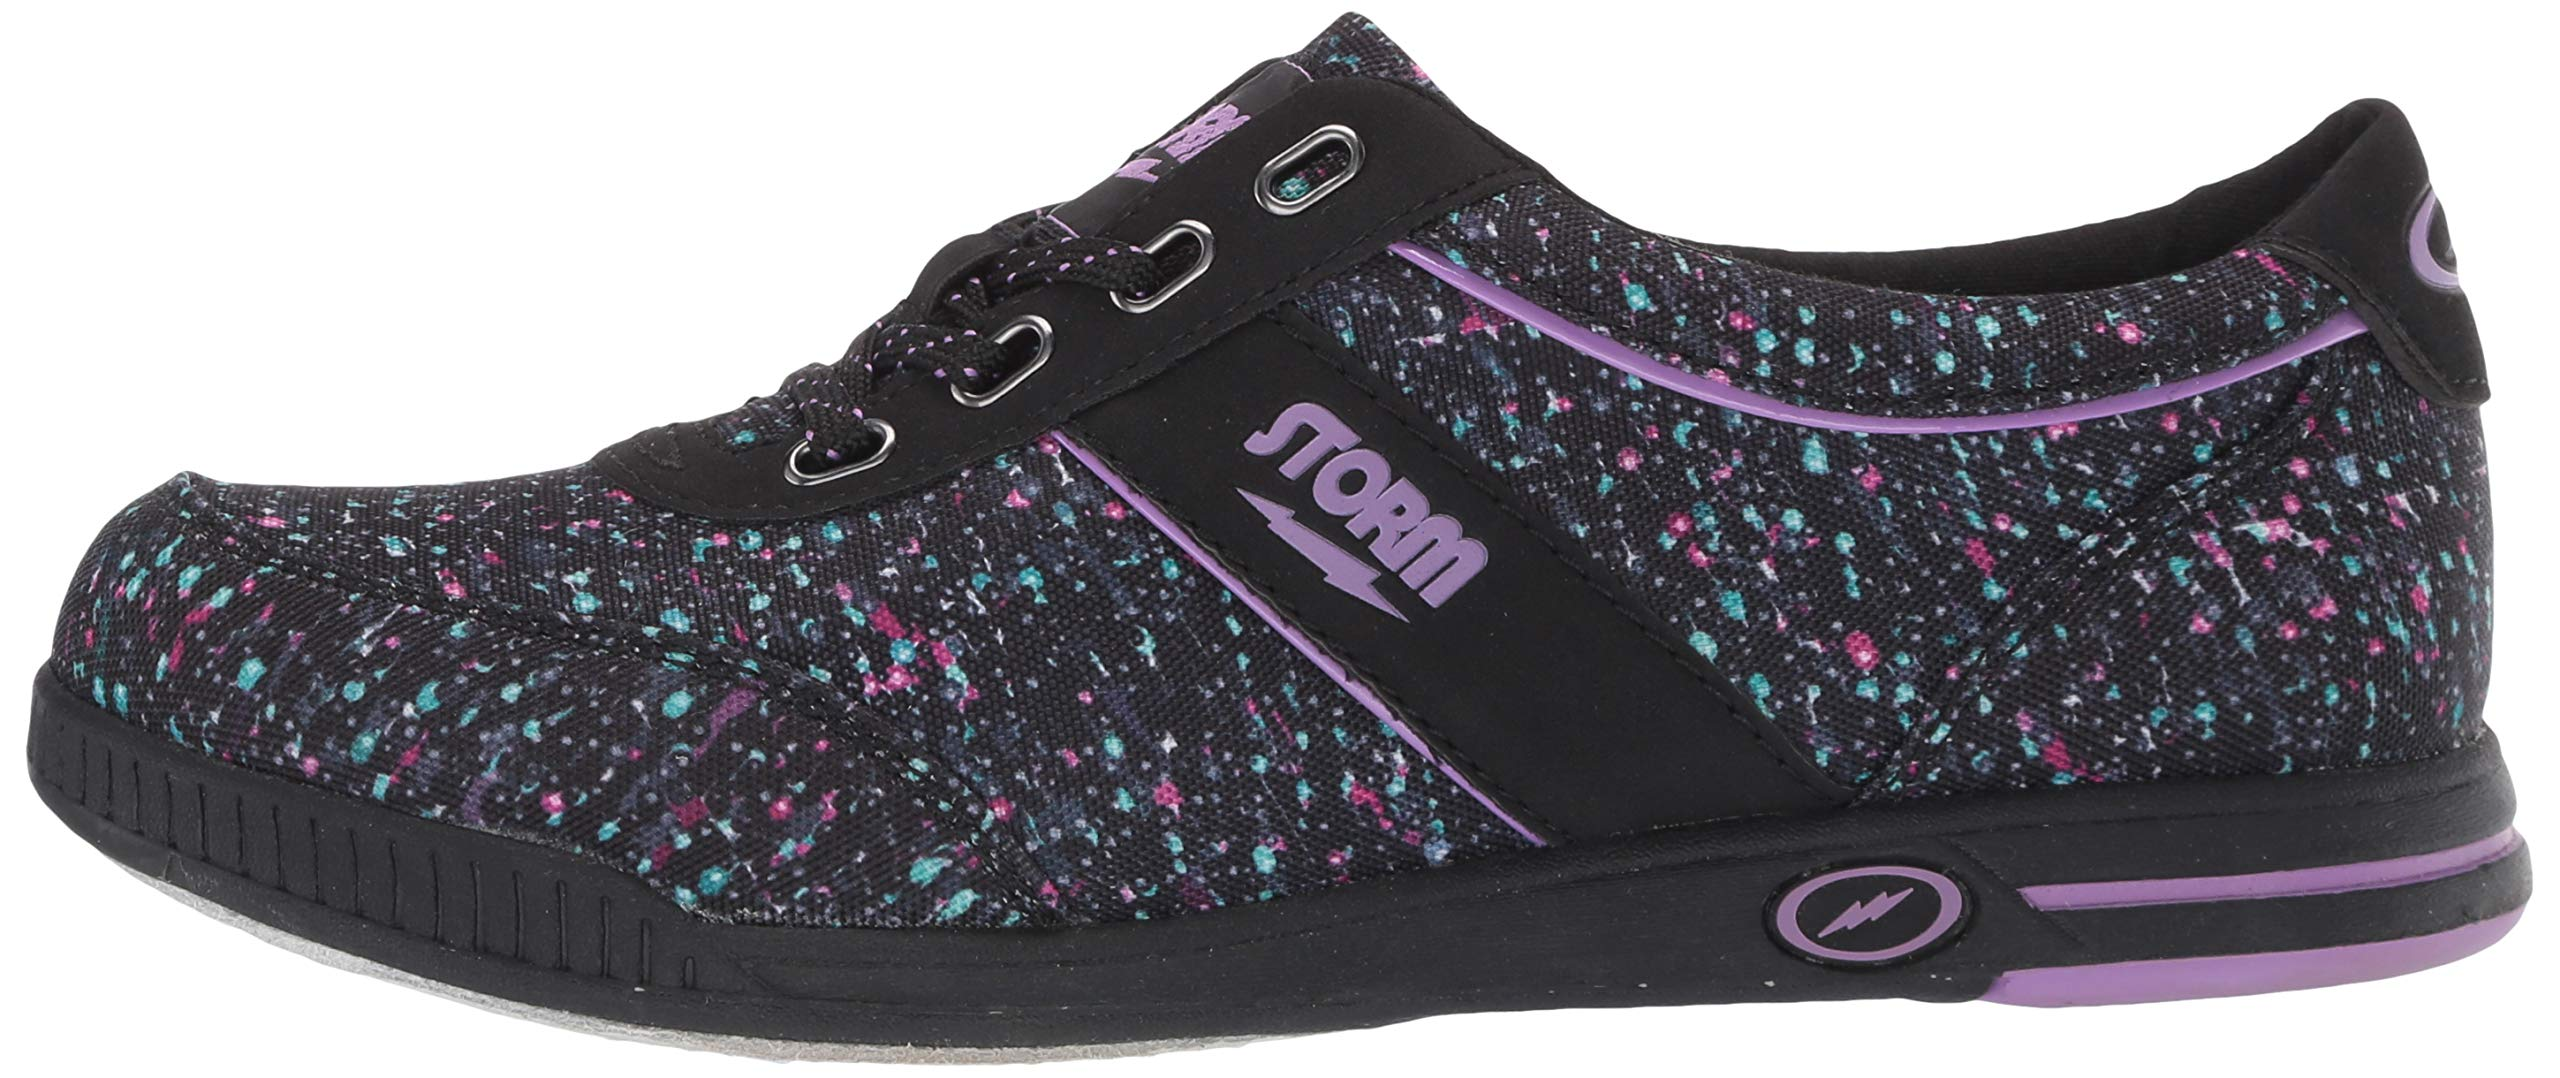 Storm SPSW0000399 060 Bowling Shoes, Multi Color, 6.0 by Storm (Image #5)